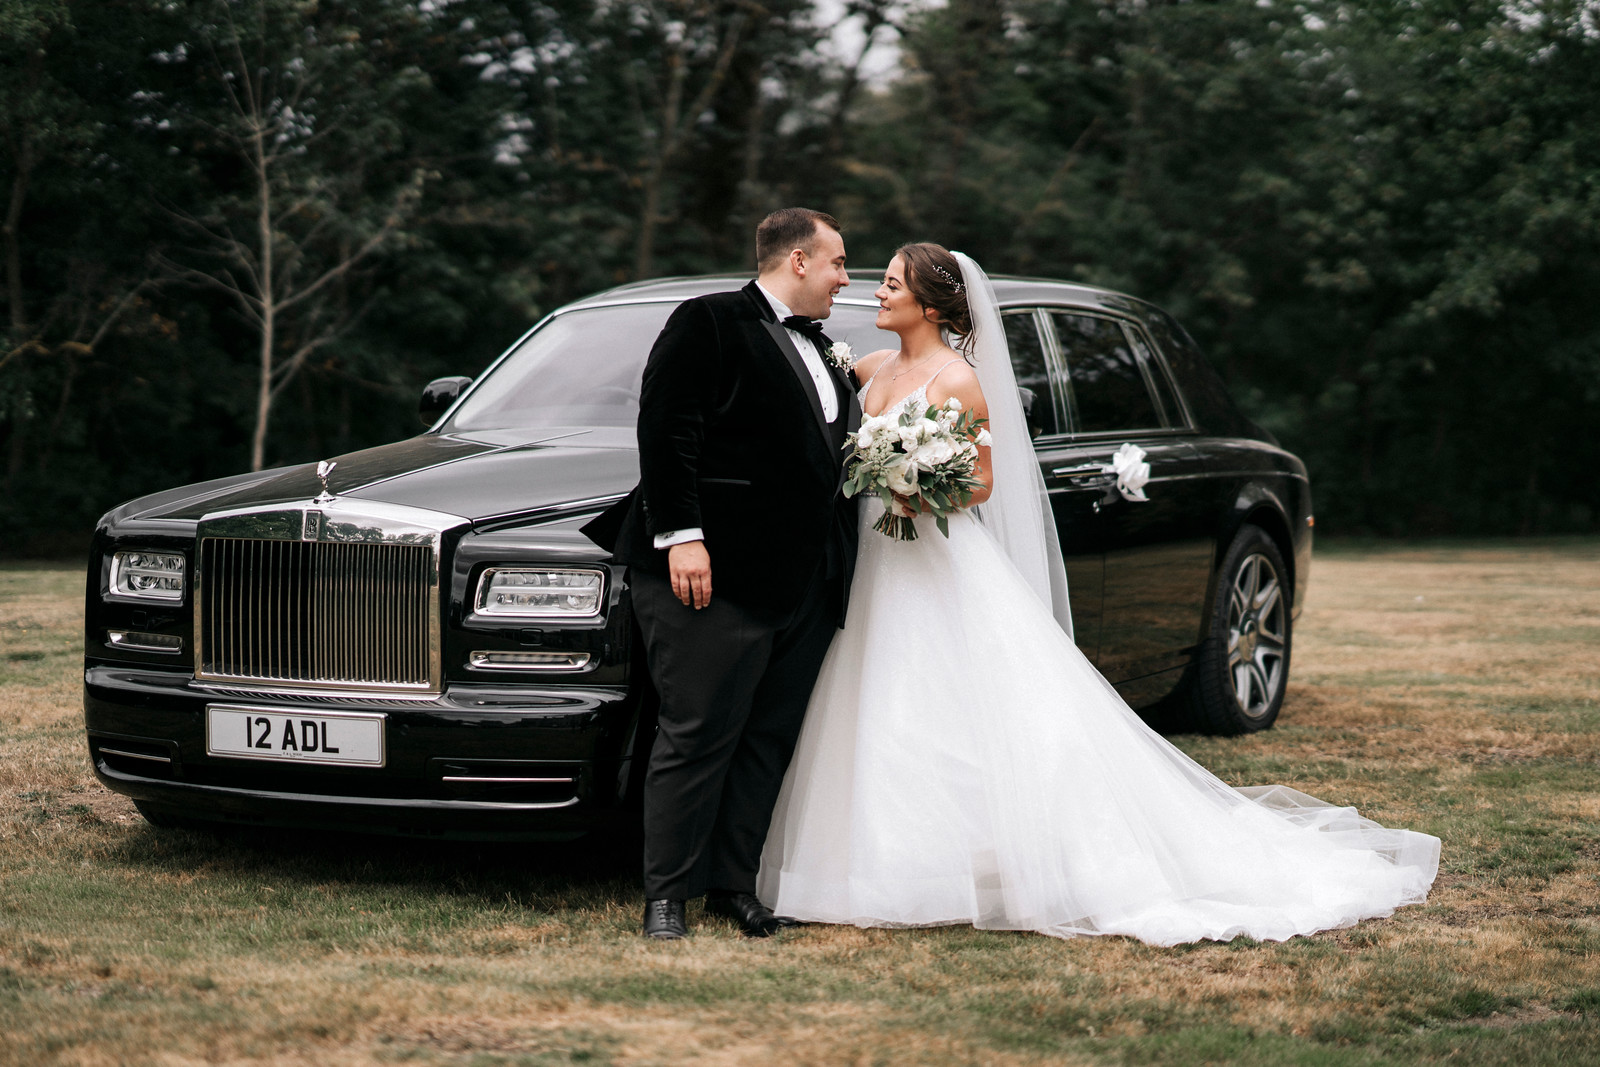 Bride and Groom smile at each other as their wedding car is behind them